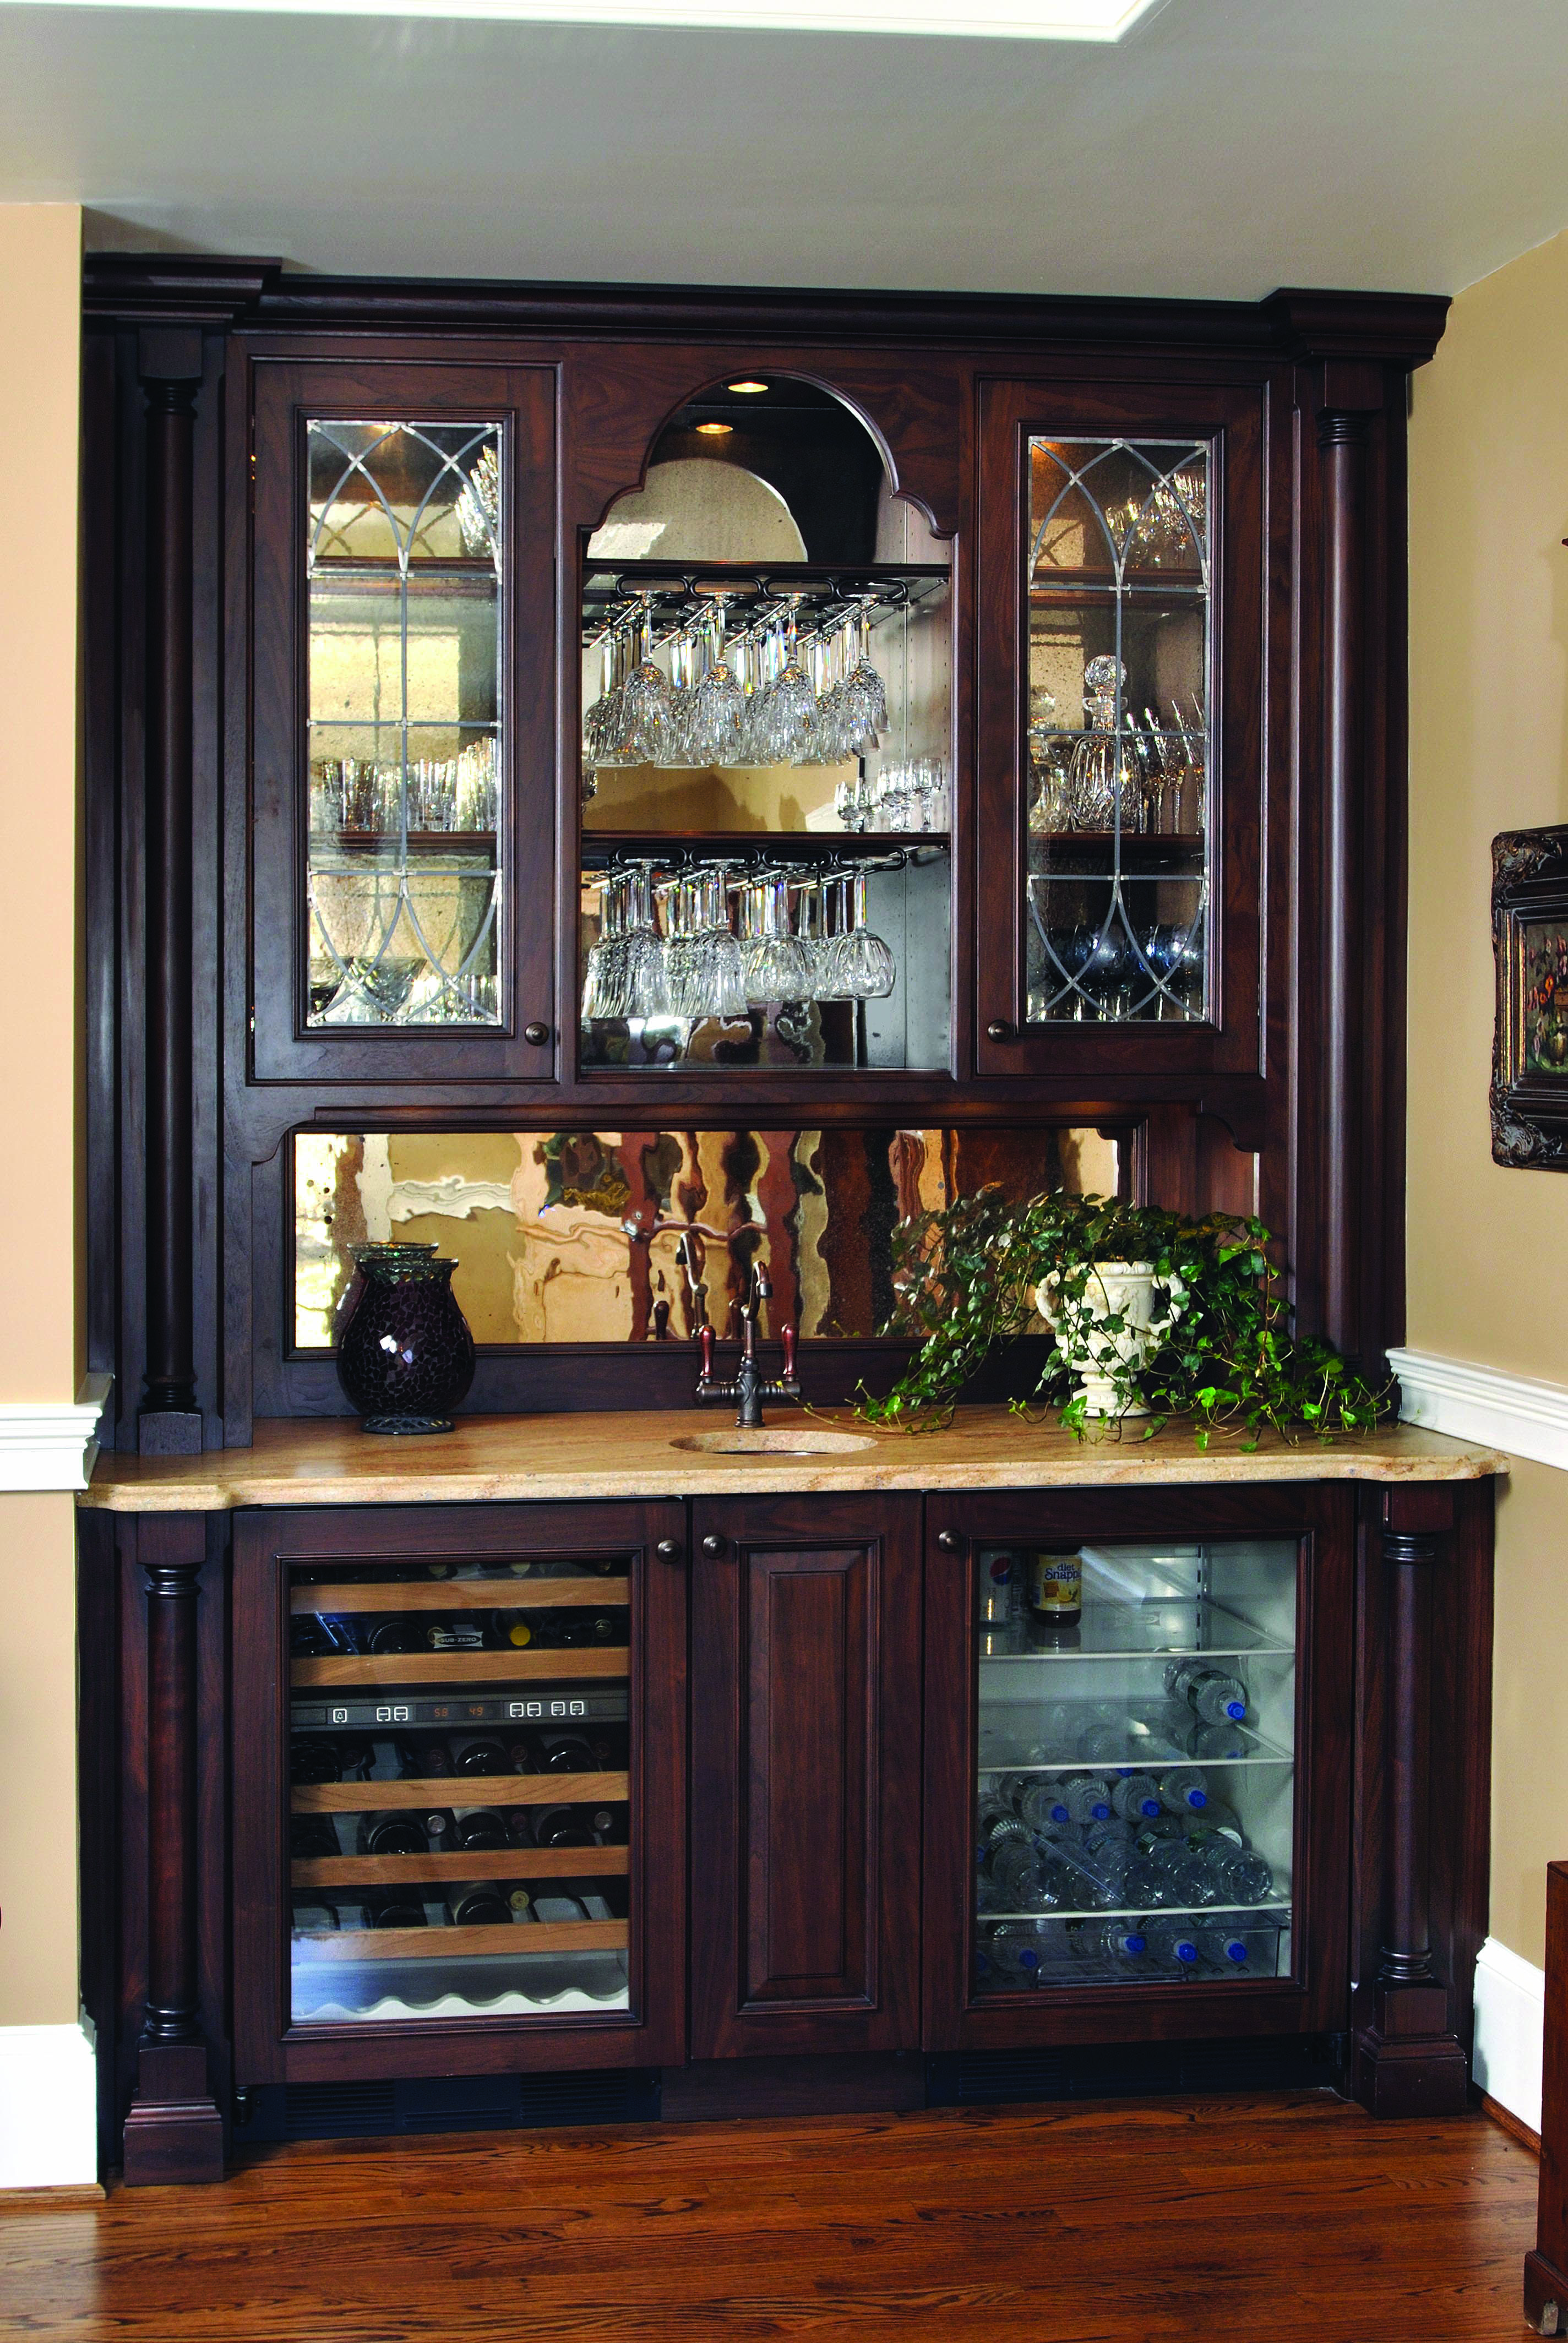 8 Top Trends In Basement Wet Bar Design For 2019 With Images